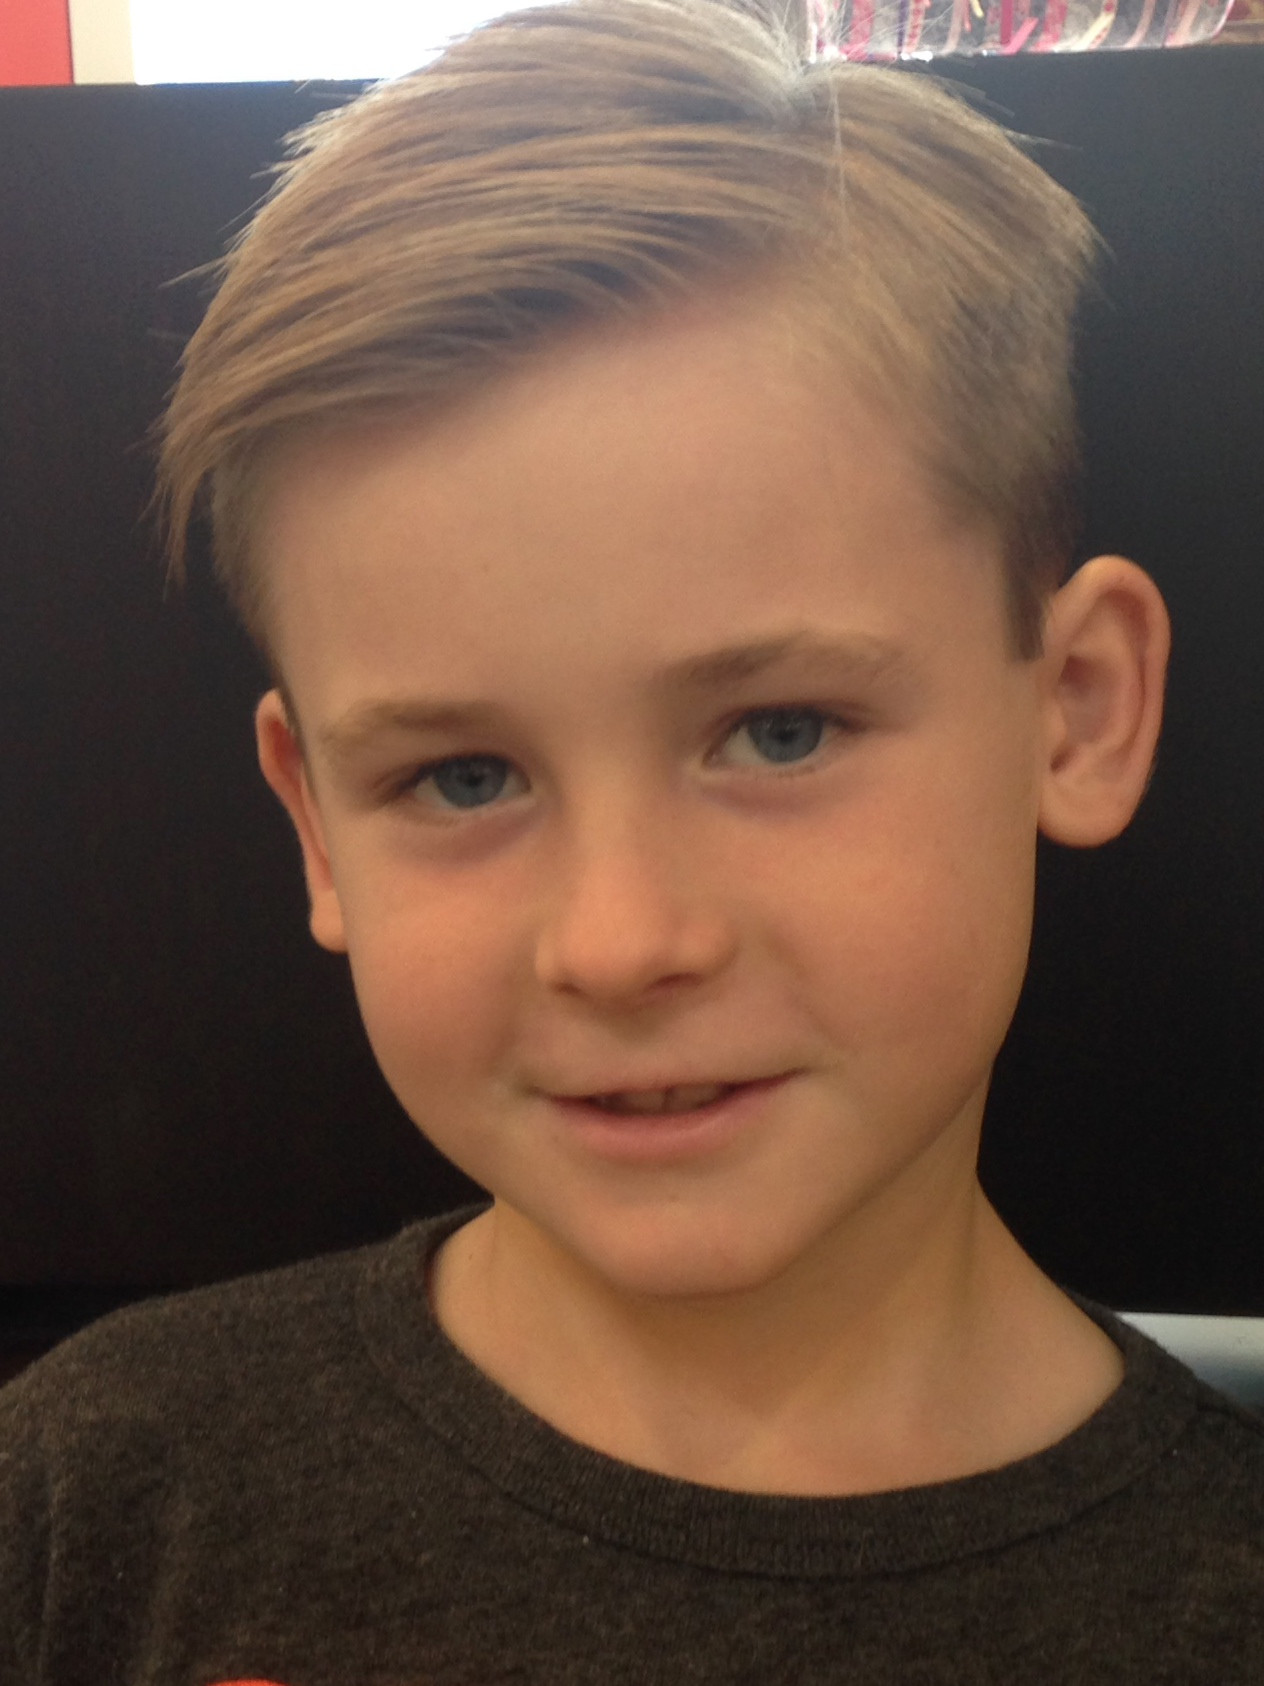 Kids Haircuts  Tipperary Kids Haircuts Beverly Hills Los Angeles